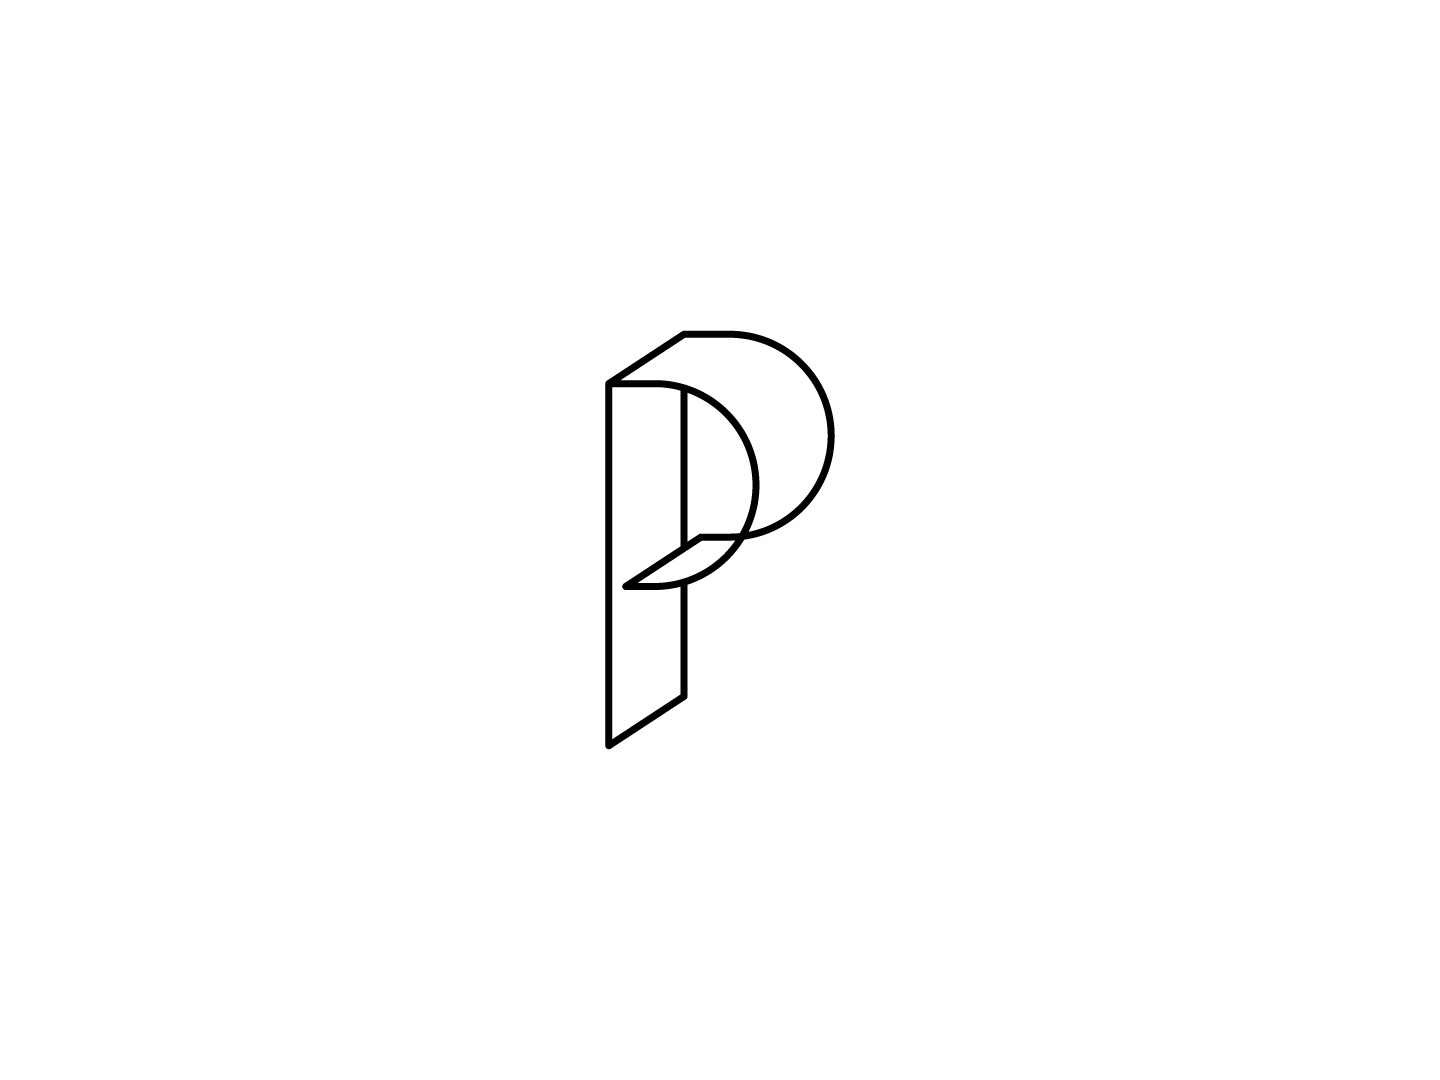 P monogram line graphic design logo